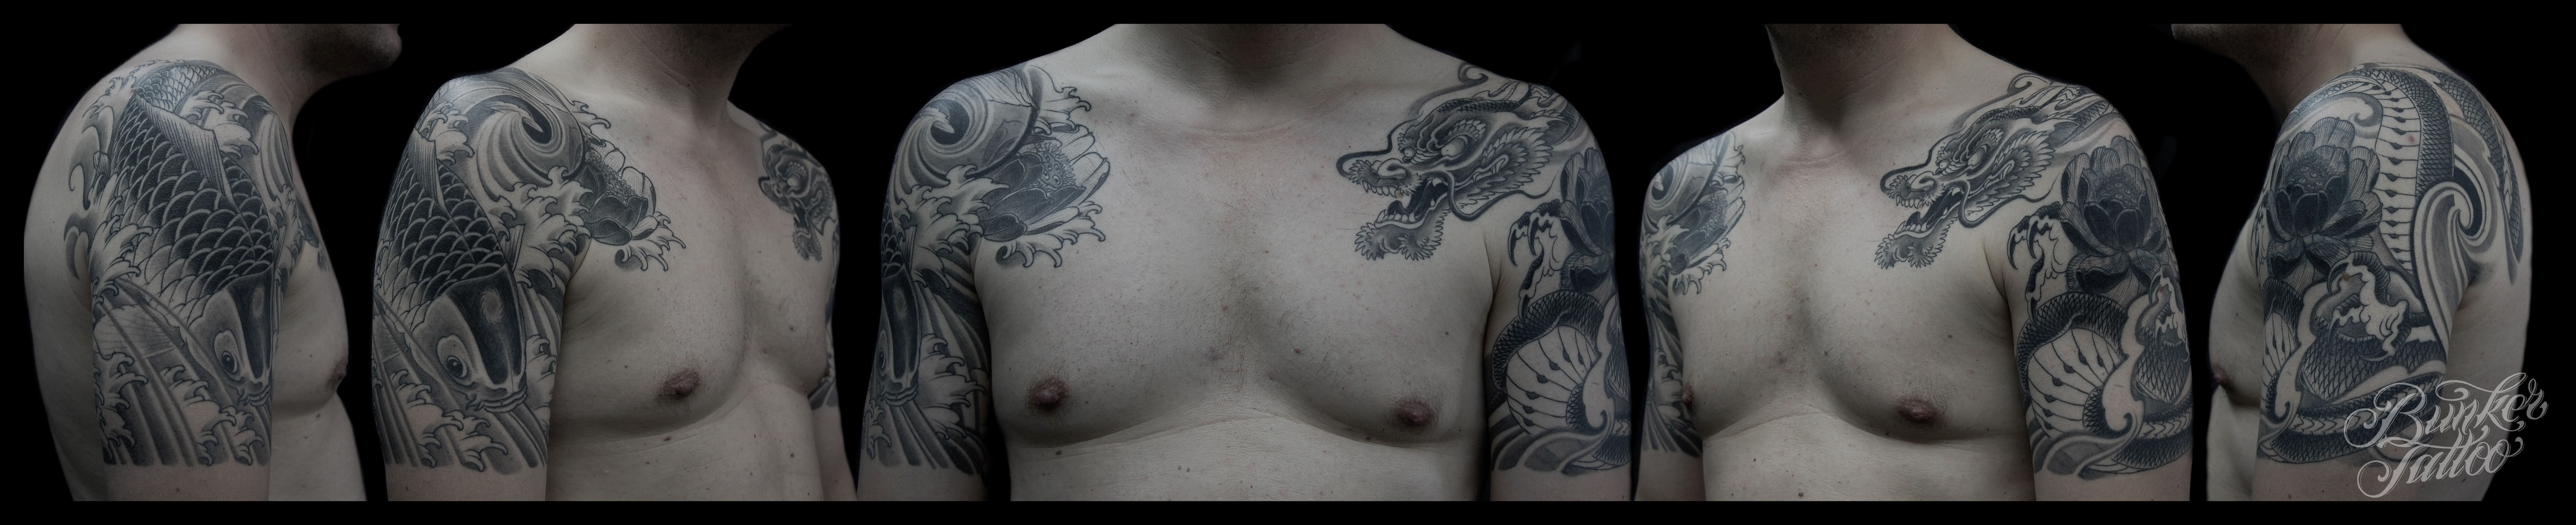 best images about tattoos on pinterest texts facebook and tatuajes